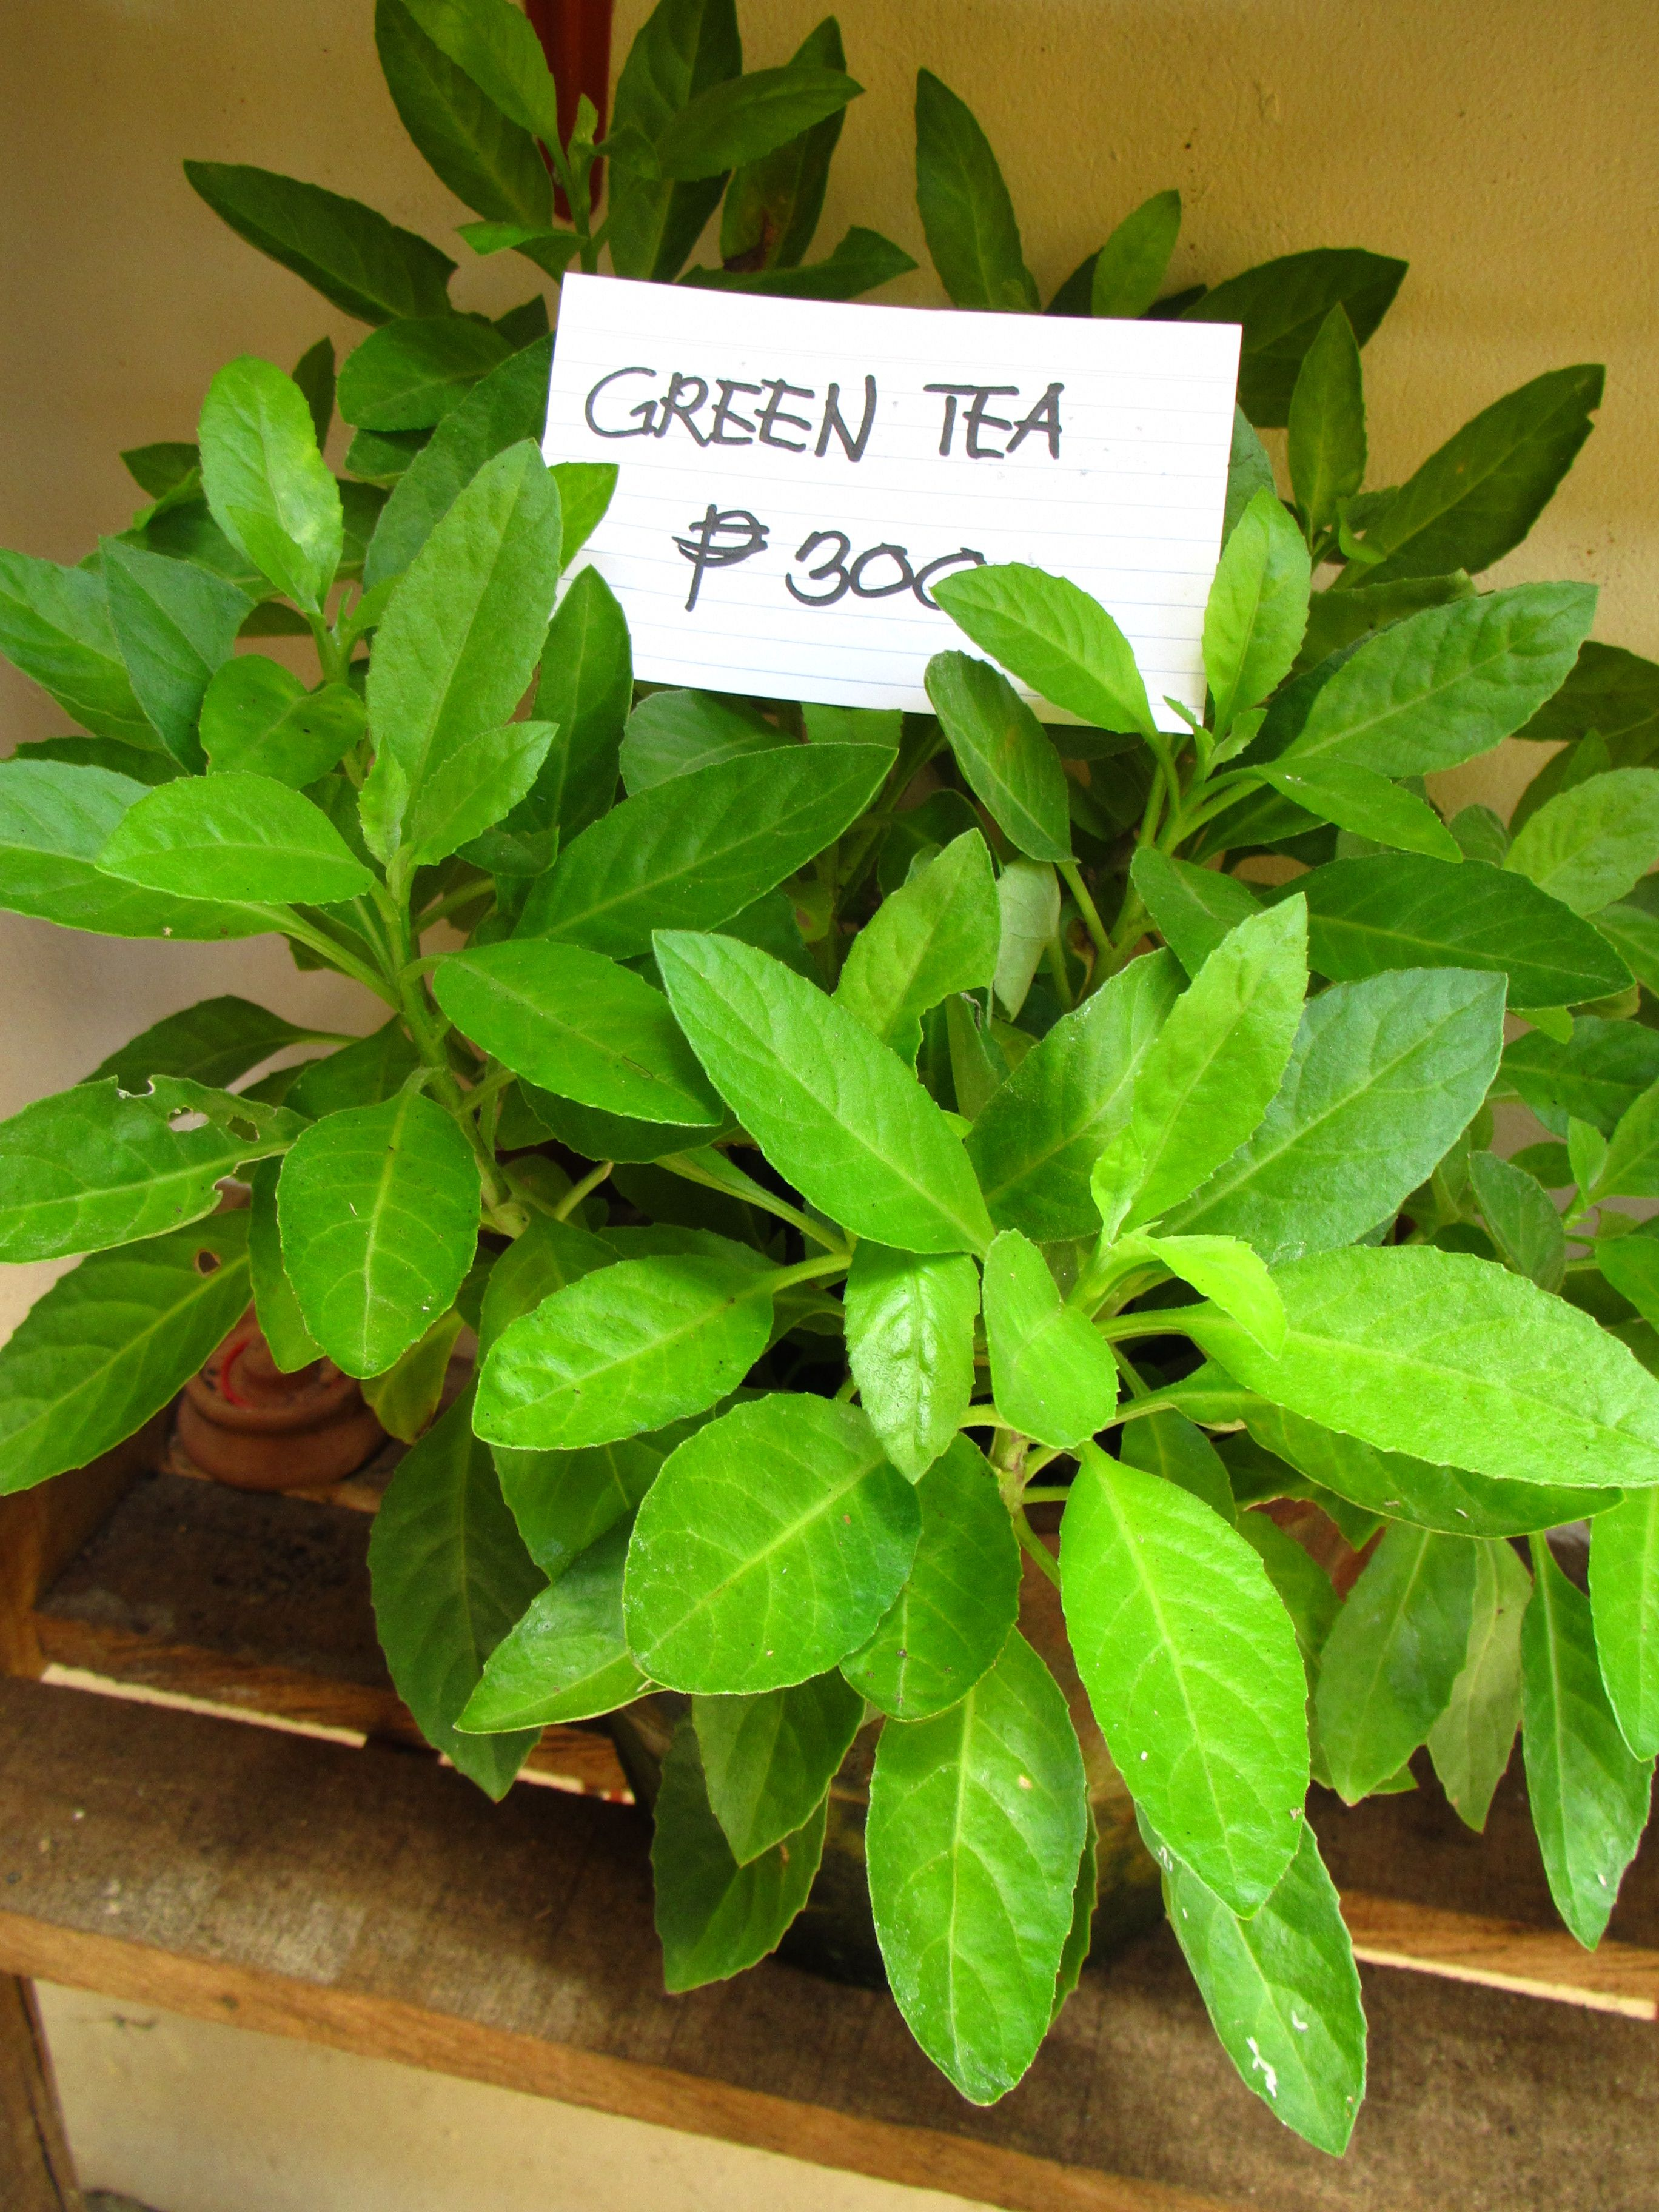 Potted Green Tea Plant for sale Healing Presents new